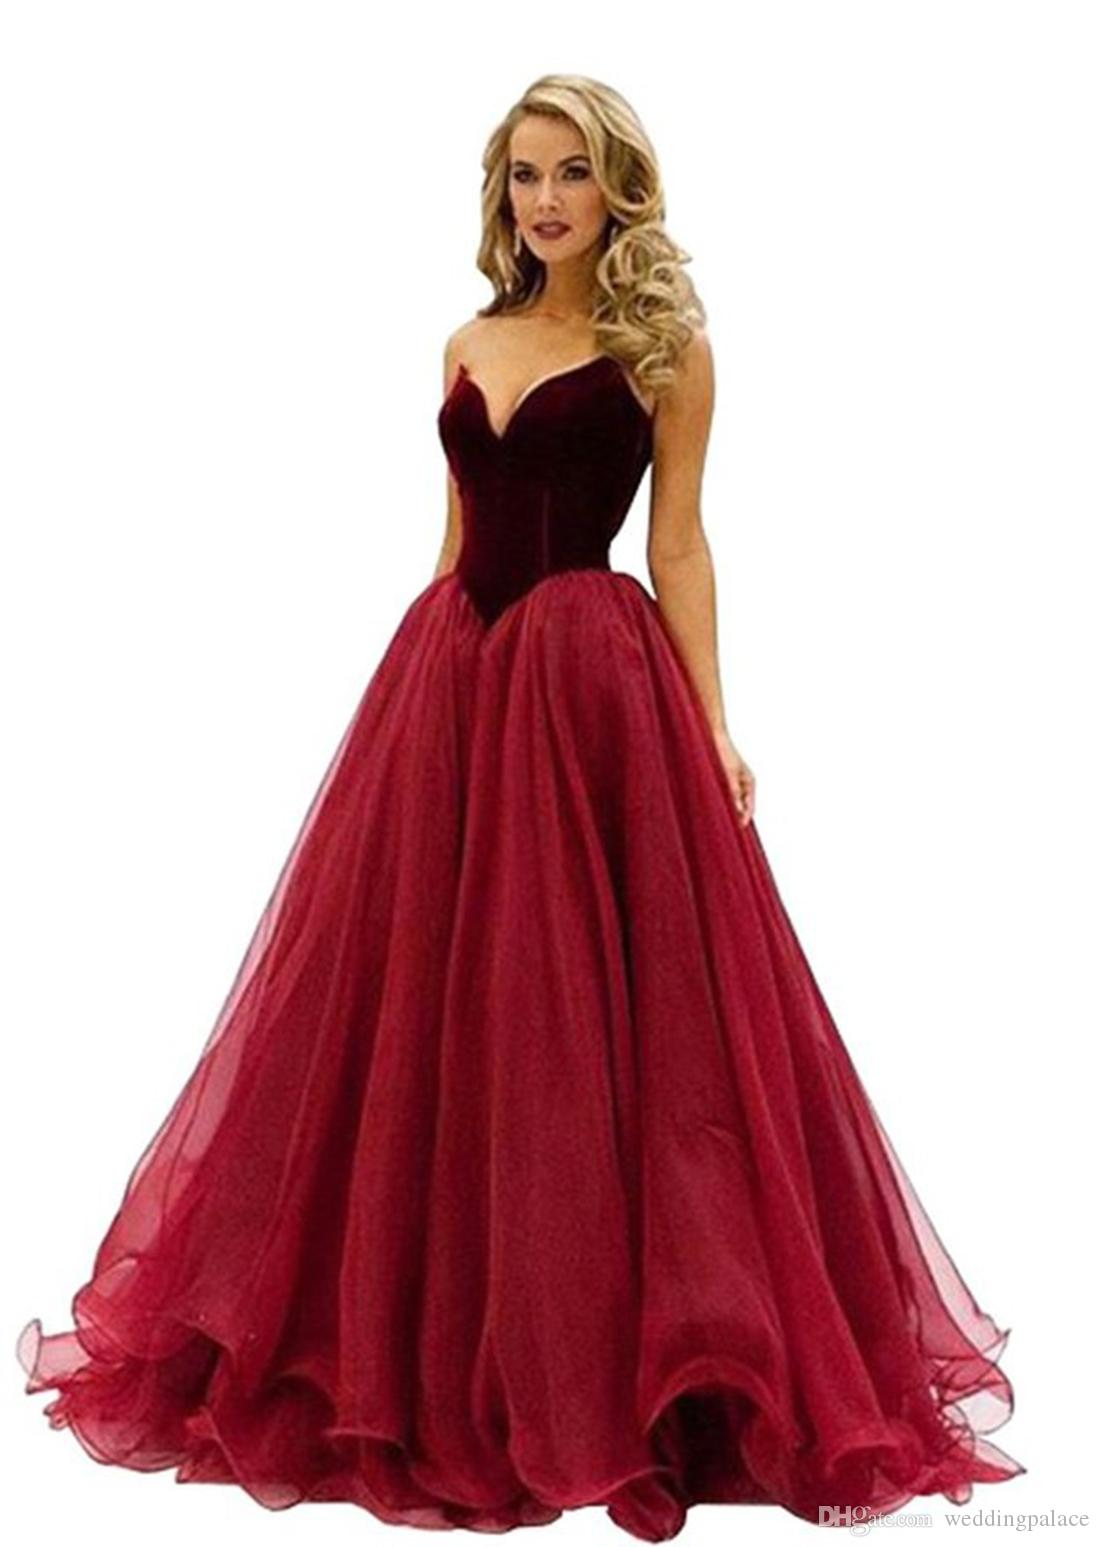 Color change online - 2016 Sweetheart Quinceanera Dresses Wine Red Velvet Top Color Can Not Change Tulle A Line Floor Length Evening Party Prom Dresses Gown